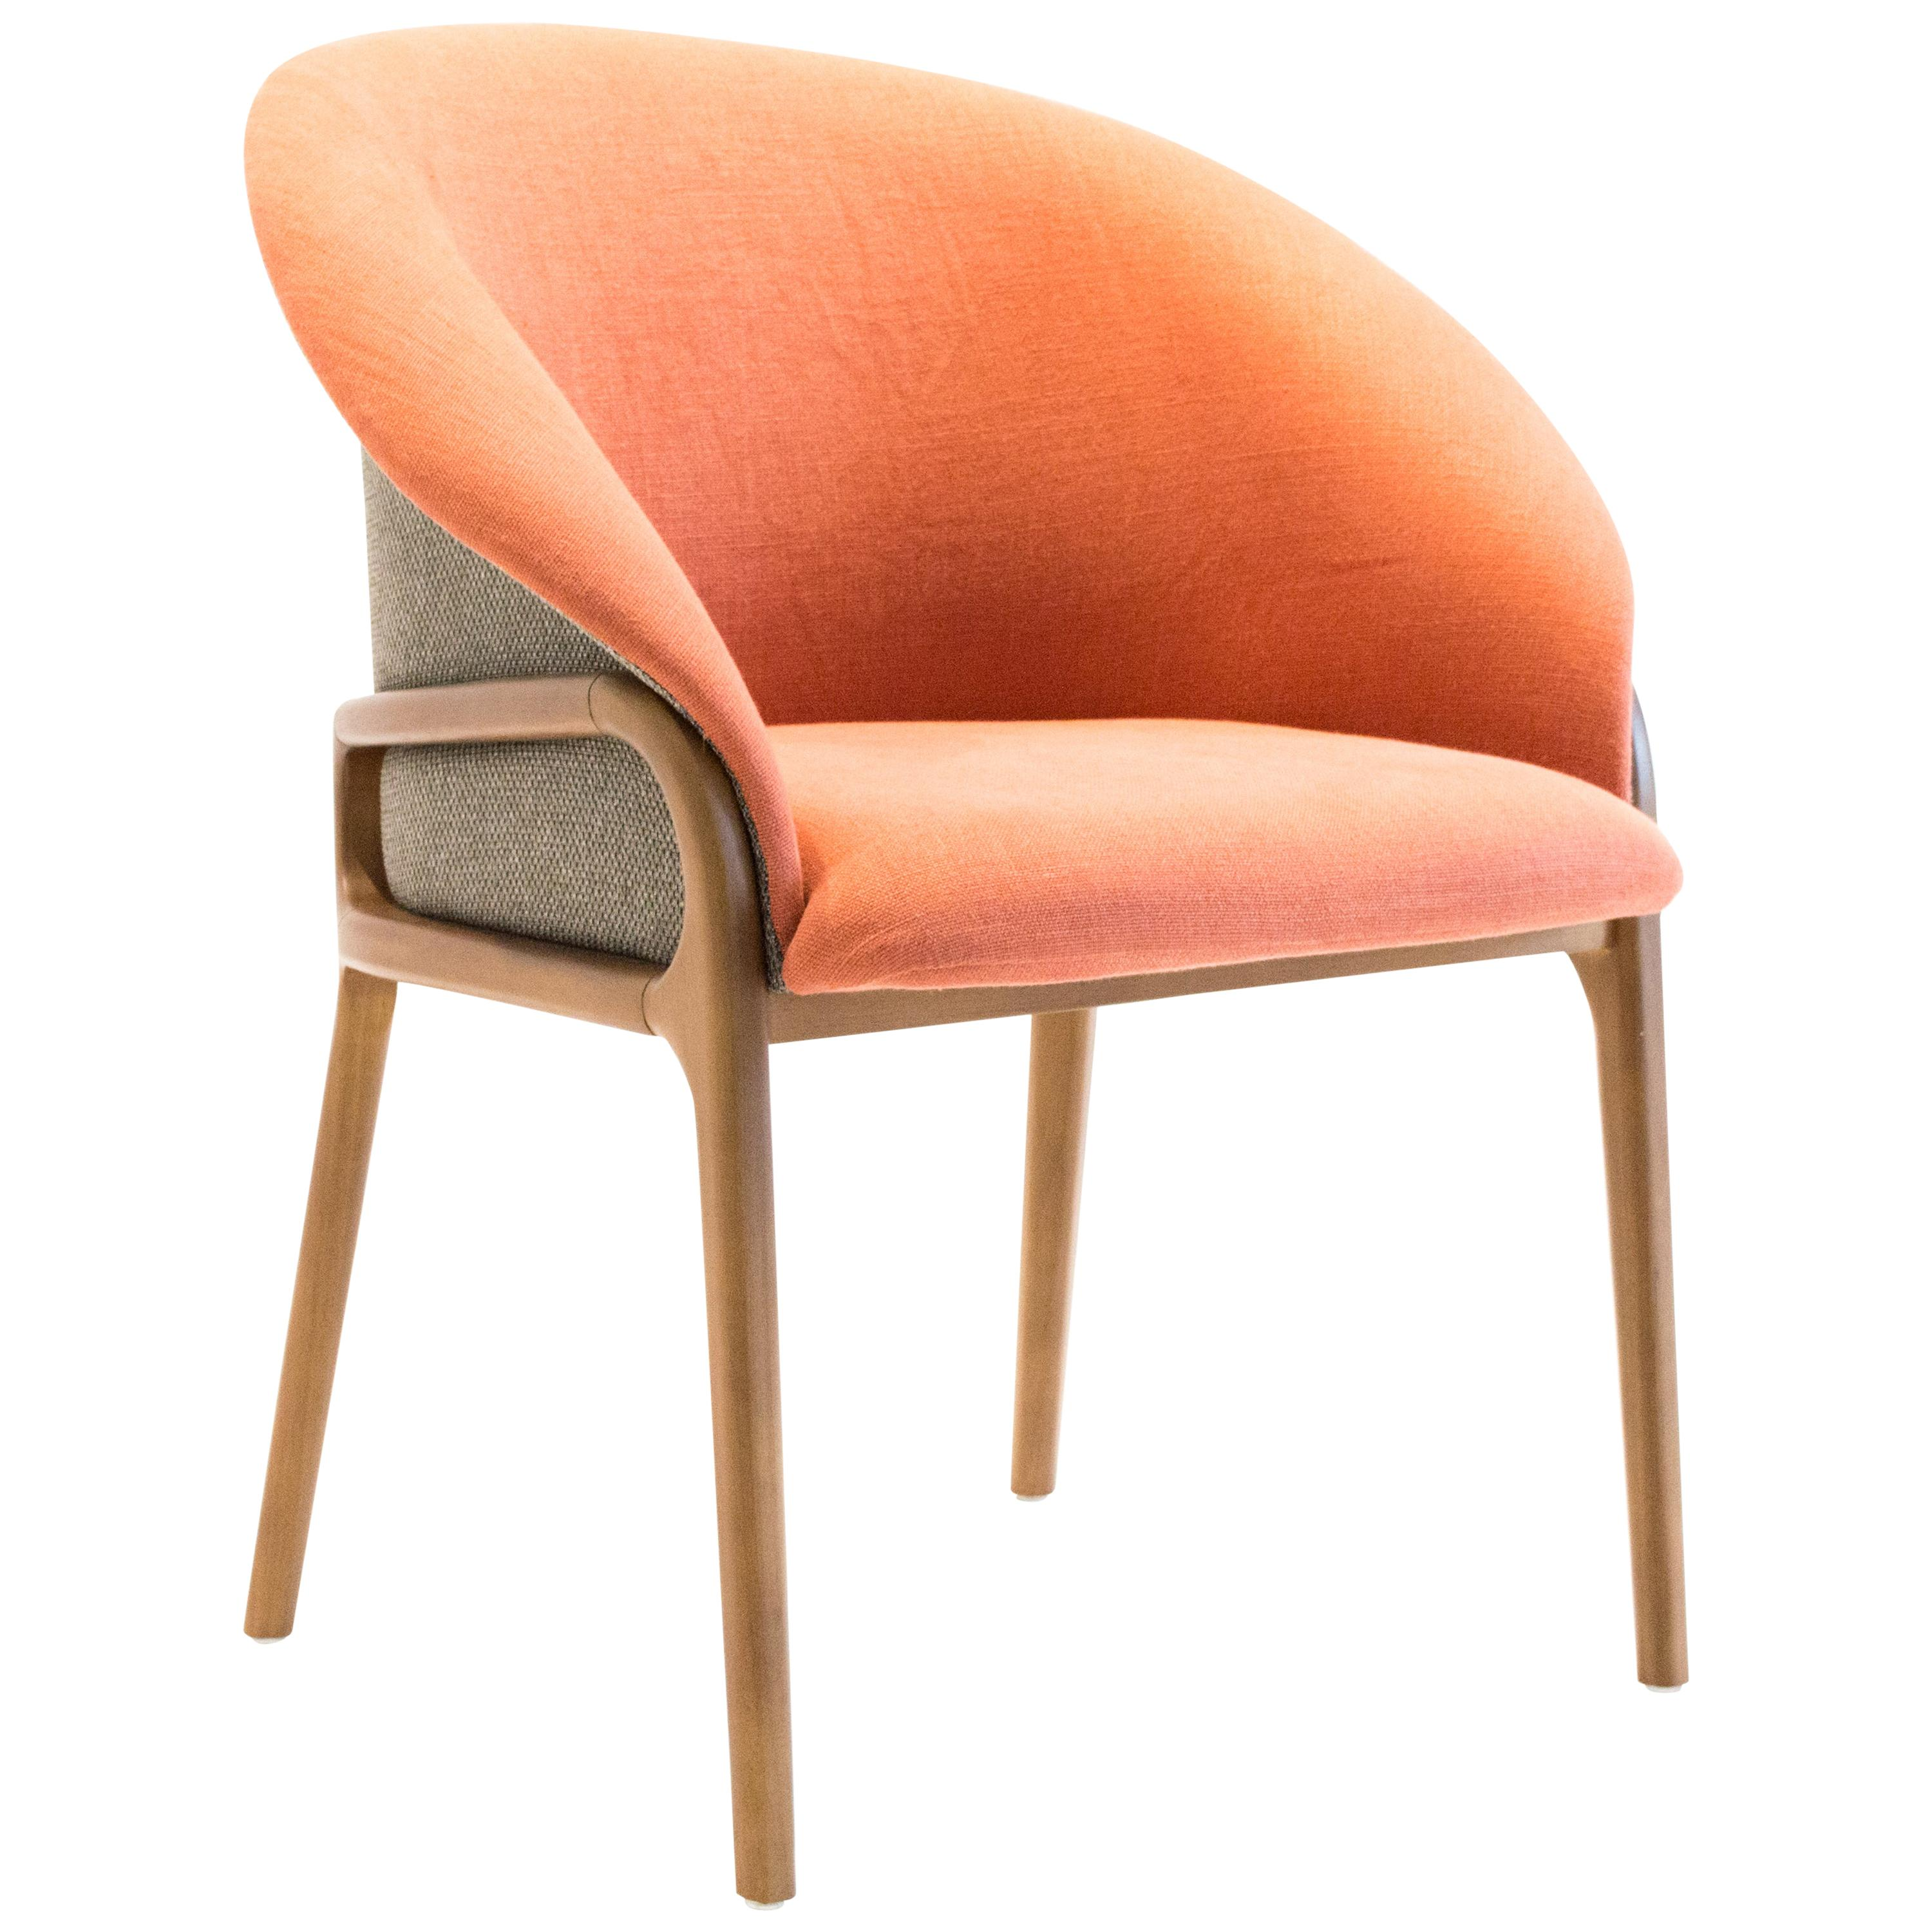 Modern Organic Chair in Solid Wood, Upholstered Flexible Seating